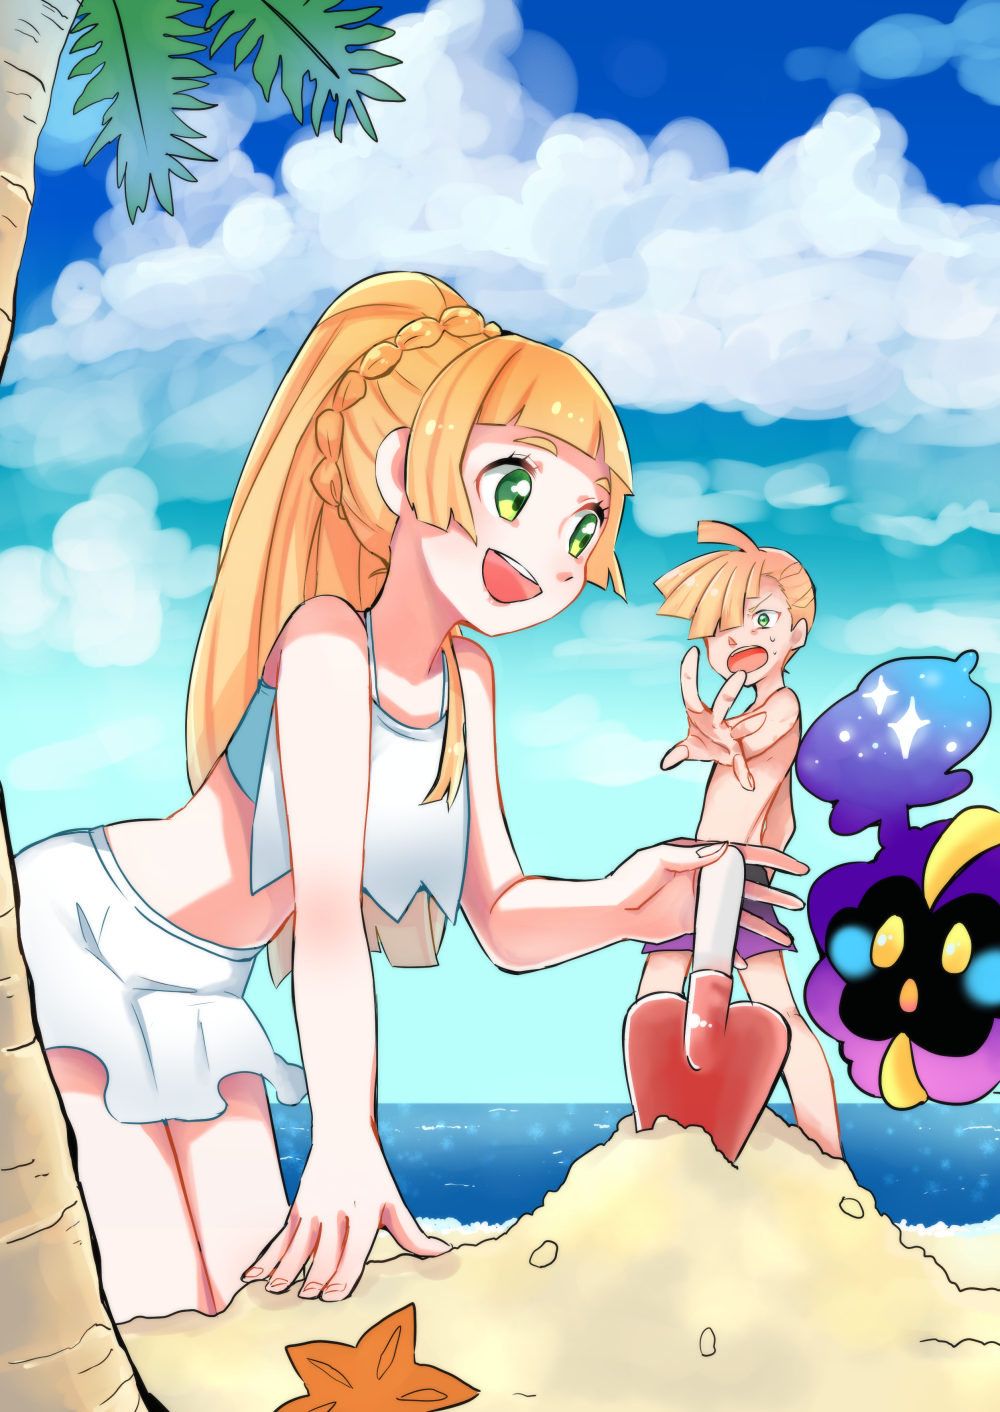 1boy 1girl beach blonde_hair braid brother_and_sister clouds cosmog french_braid gladio_(pokemon) green_eyes hetchhog_tw highres holding lillie_(pokemon) long_hair ocean outstretched_arm palm_tree pokemon pokemon_(game) pokemon_sm sand sand_castle sand_sculpture sarong sea_star shovel siblings smile swimsuit tree water worktool